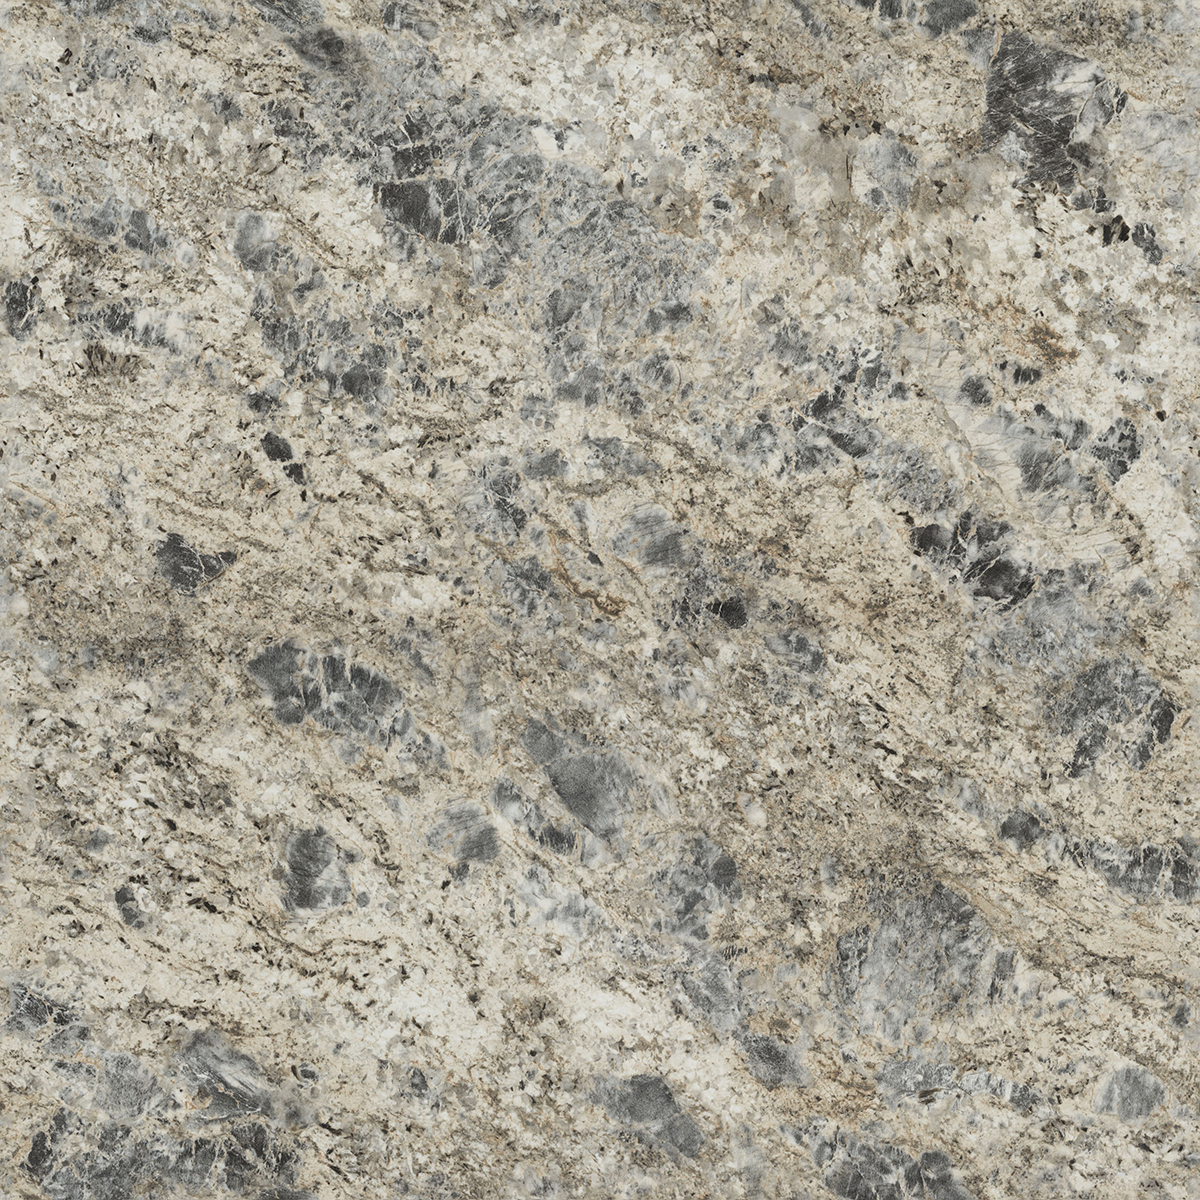 Granite Laminate Countertop Sheets 9304 Blue Flower Granite Laminate Countertops